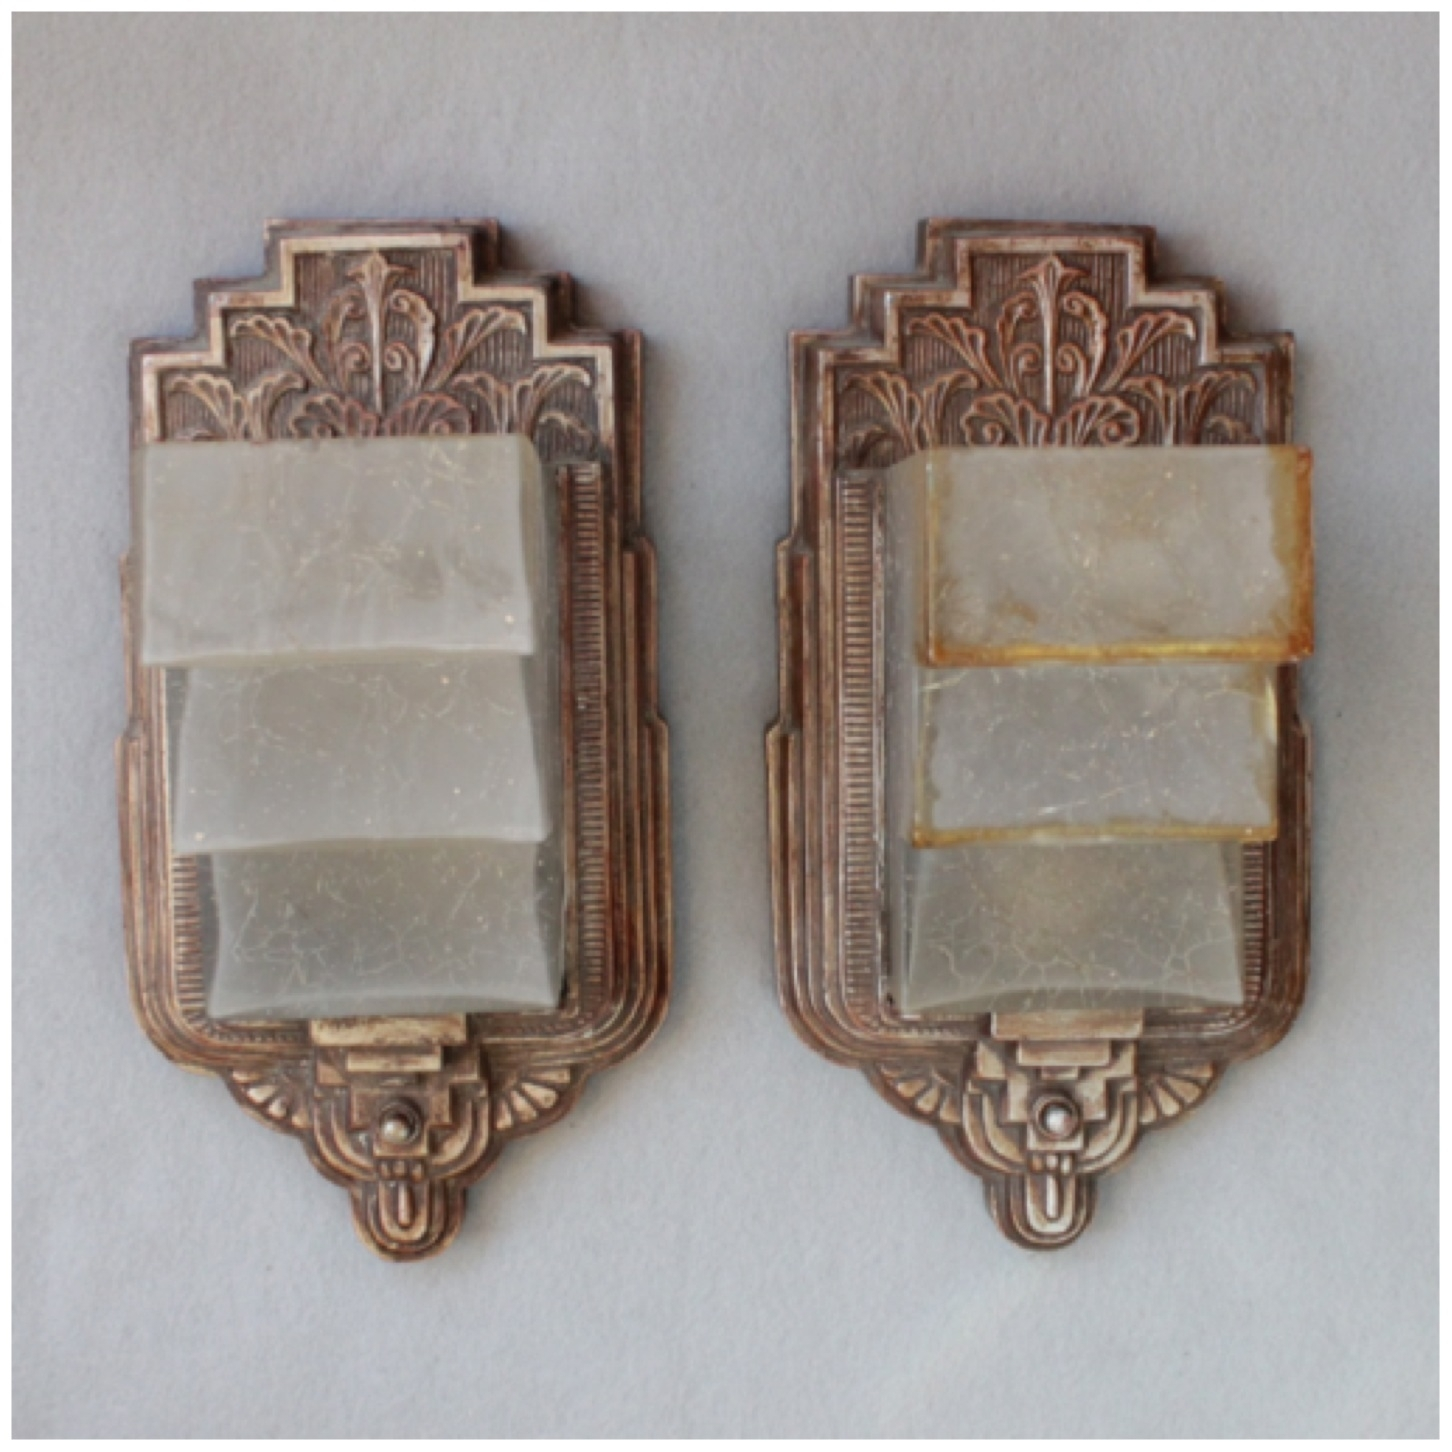 Diy155 Pair Art Deco Wall Sconces | Bogart, Bremmer & Bradley Antiques with Art Deco Wall Sconces (Image 9 of 20)